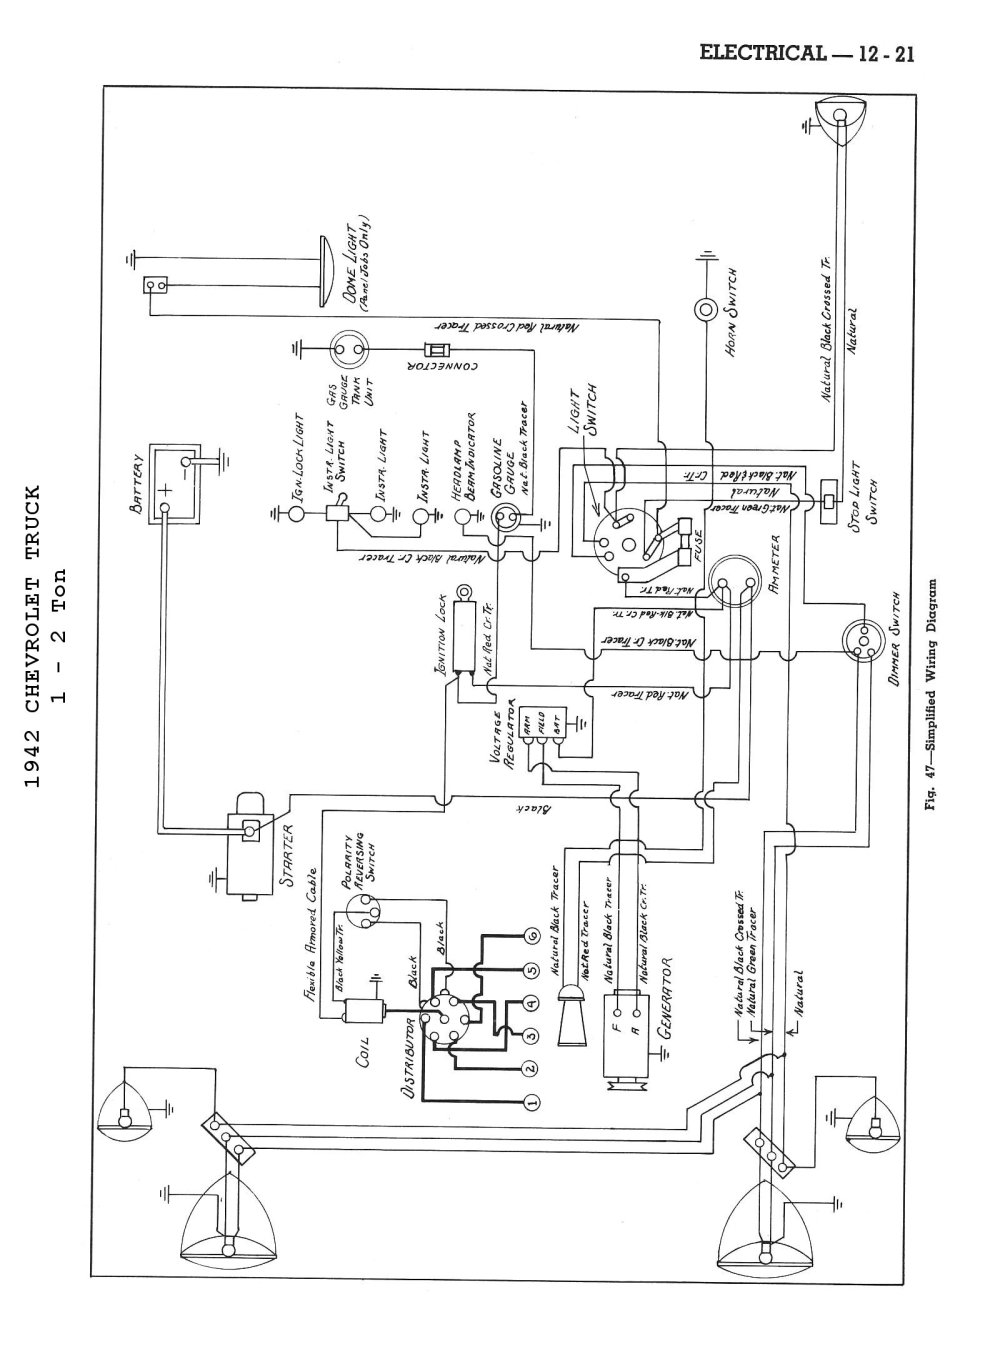 medium resolution of wiring diagram 1953 plymouth 13 11 spikeballclubkoeln de u20221947 plymouth wiring diagram wiring schematic diagram